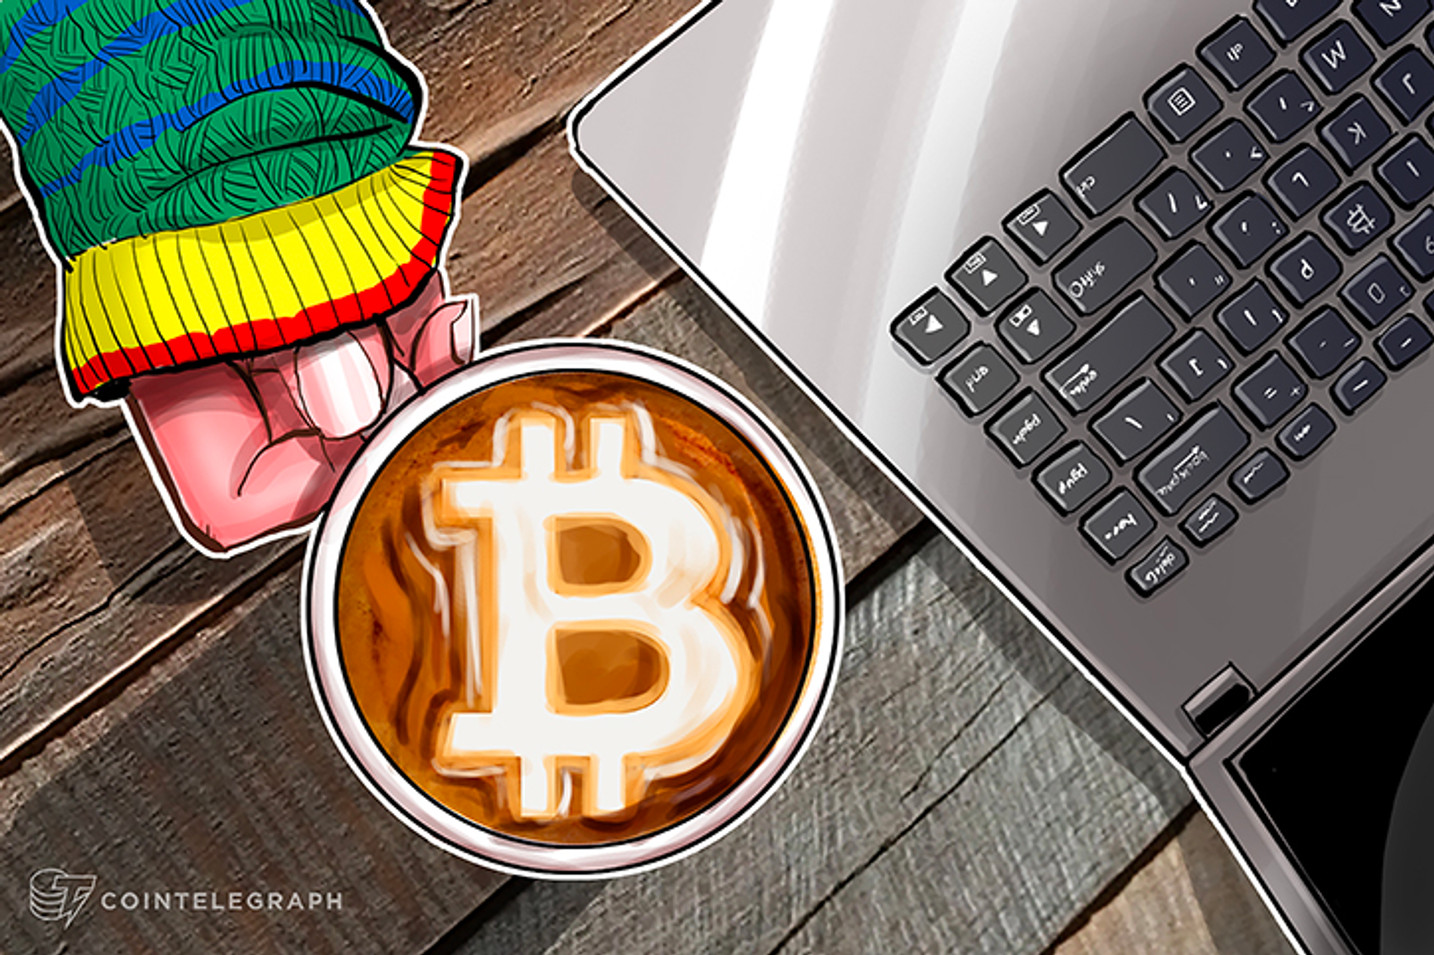 Starbucks Buenos Aires Accused of Cryptocurrency Mining Using Customer's Laptop